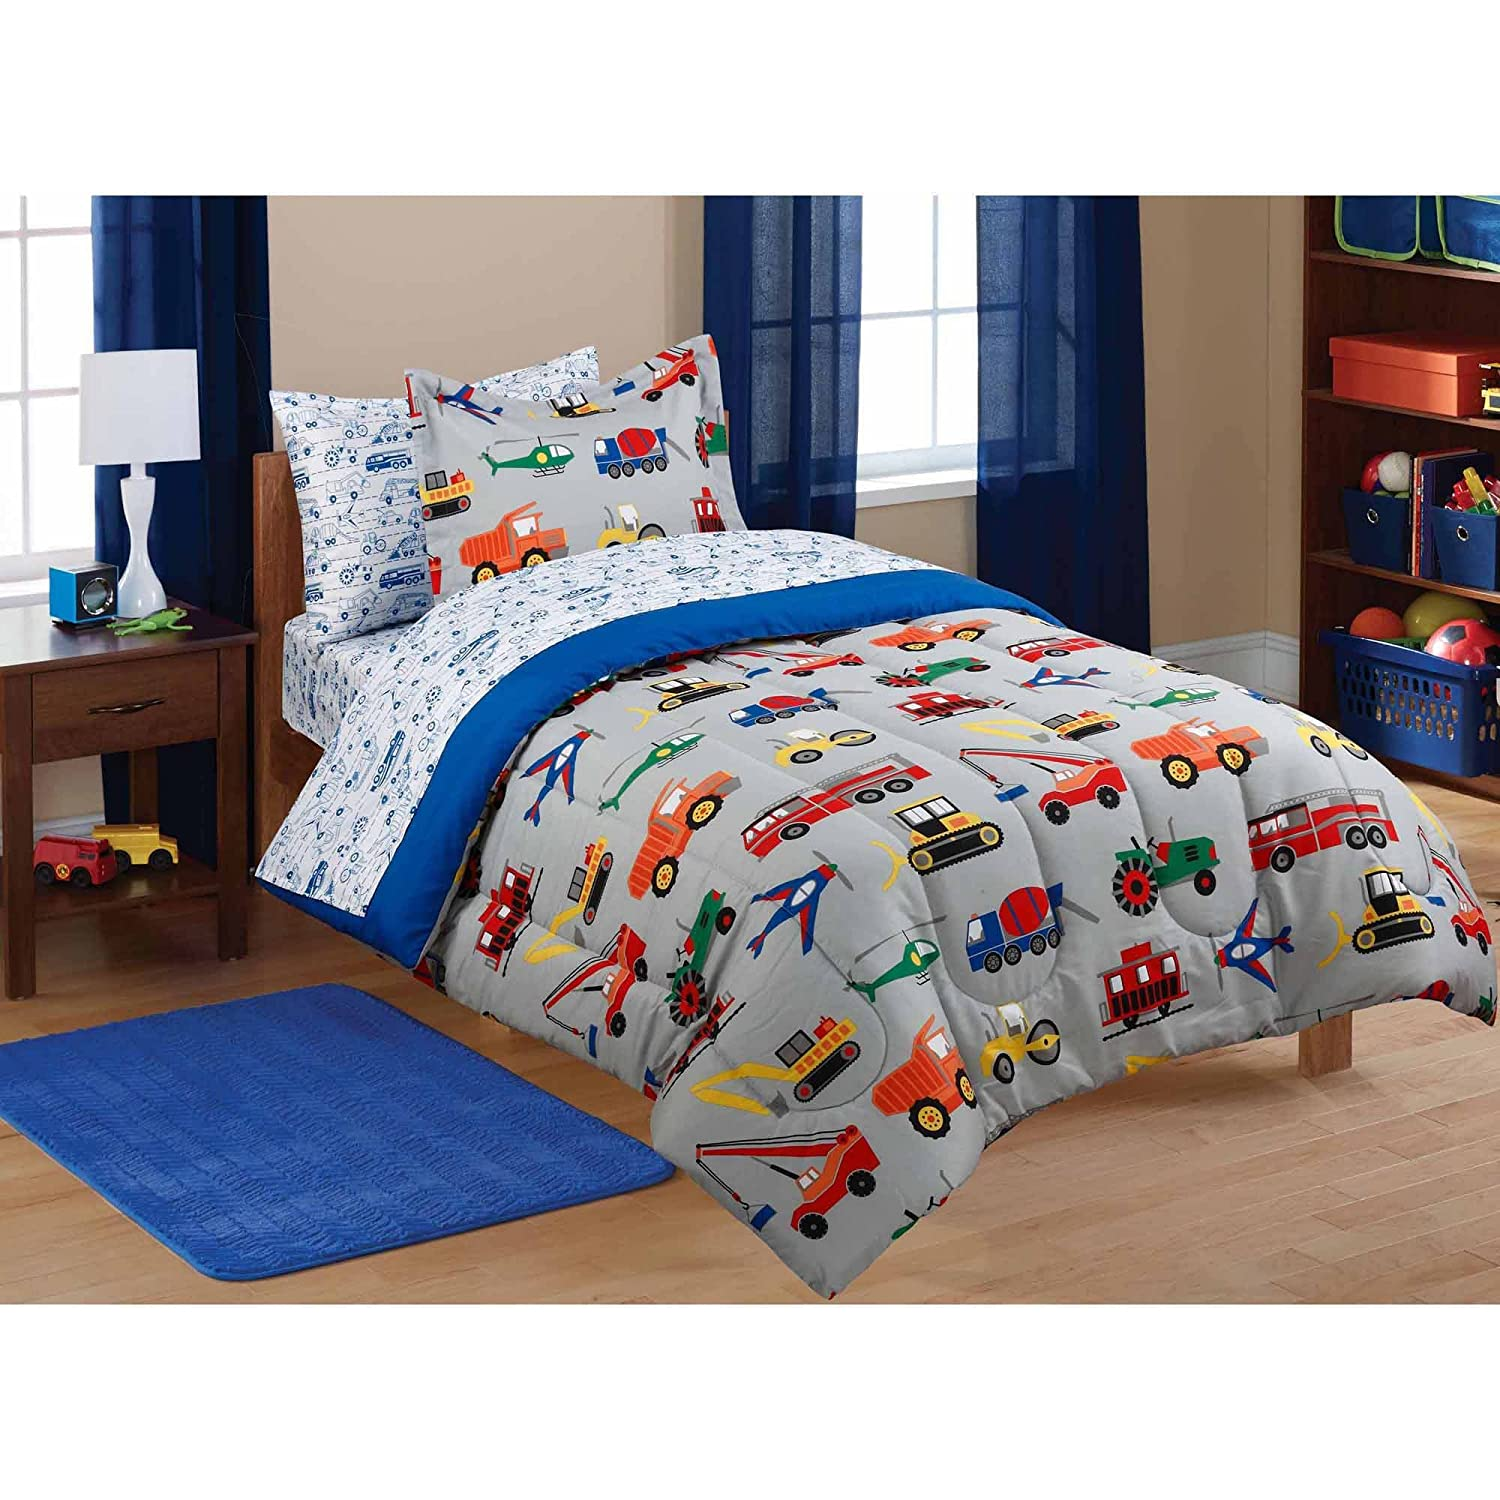 5pc Boy Blue Green Red Car Truck Transportation Twin Comforter Set (5pc Bed in a Bag) Mainstays Kids CF_5PC_Transportation_T